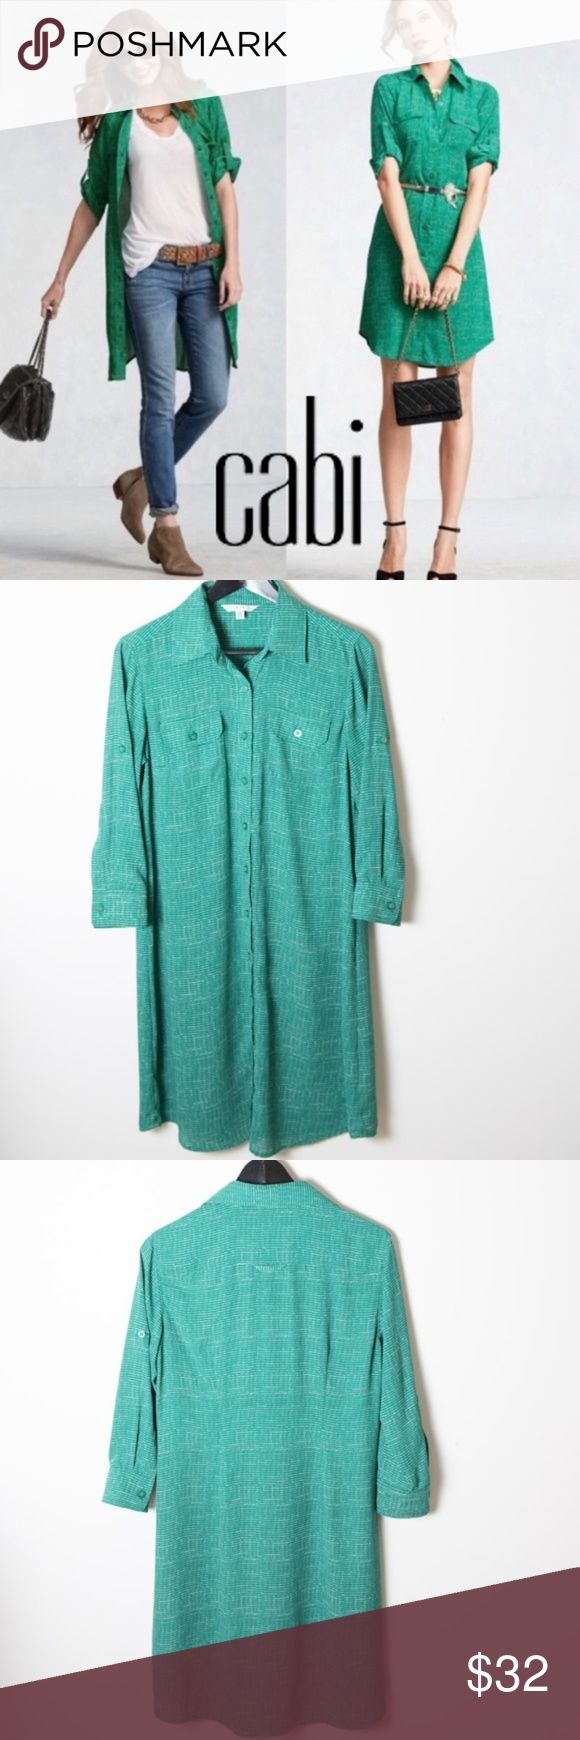 CAbi Kelly Green Shirt Dress #429 Med Knee Legnth CAbi medium shirt dress. Style # 429. Button down with collar, unlined. Front pockets. Long sleeves with button tab roll cuff to wear up or down. This shirt dress is missing the matching belt. Polka dot like pattern in white and a kelly or emerald green shade. Knee length or above the knee depending on height. Good preloved condition. No noticeable holes, stains or rips. So many ways to wear this - as a dress or layered for a casual look…